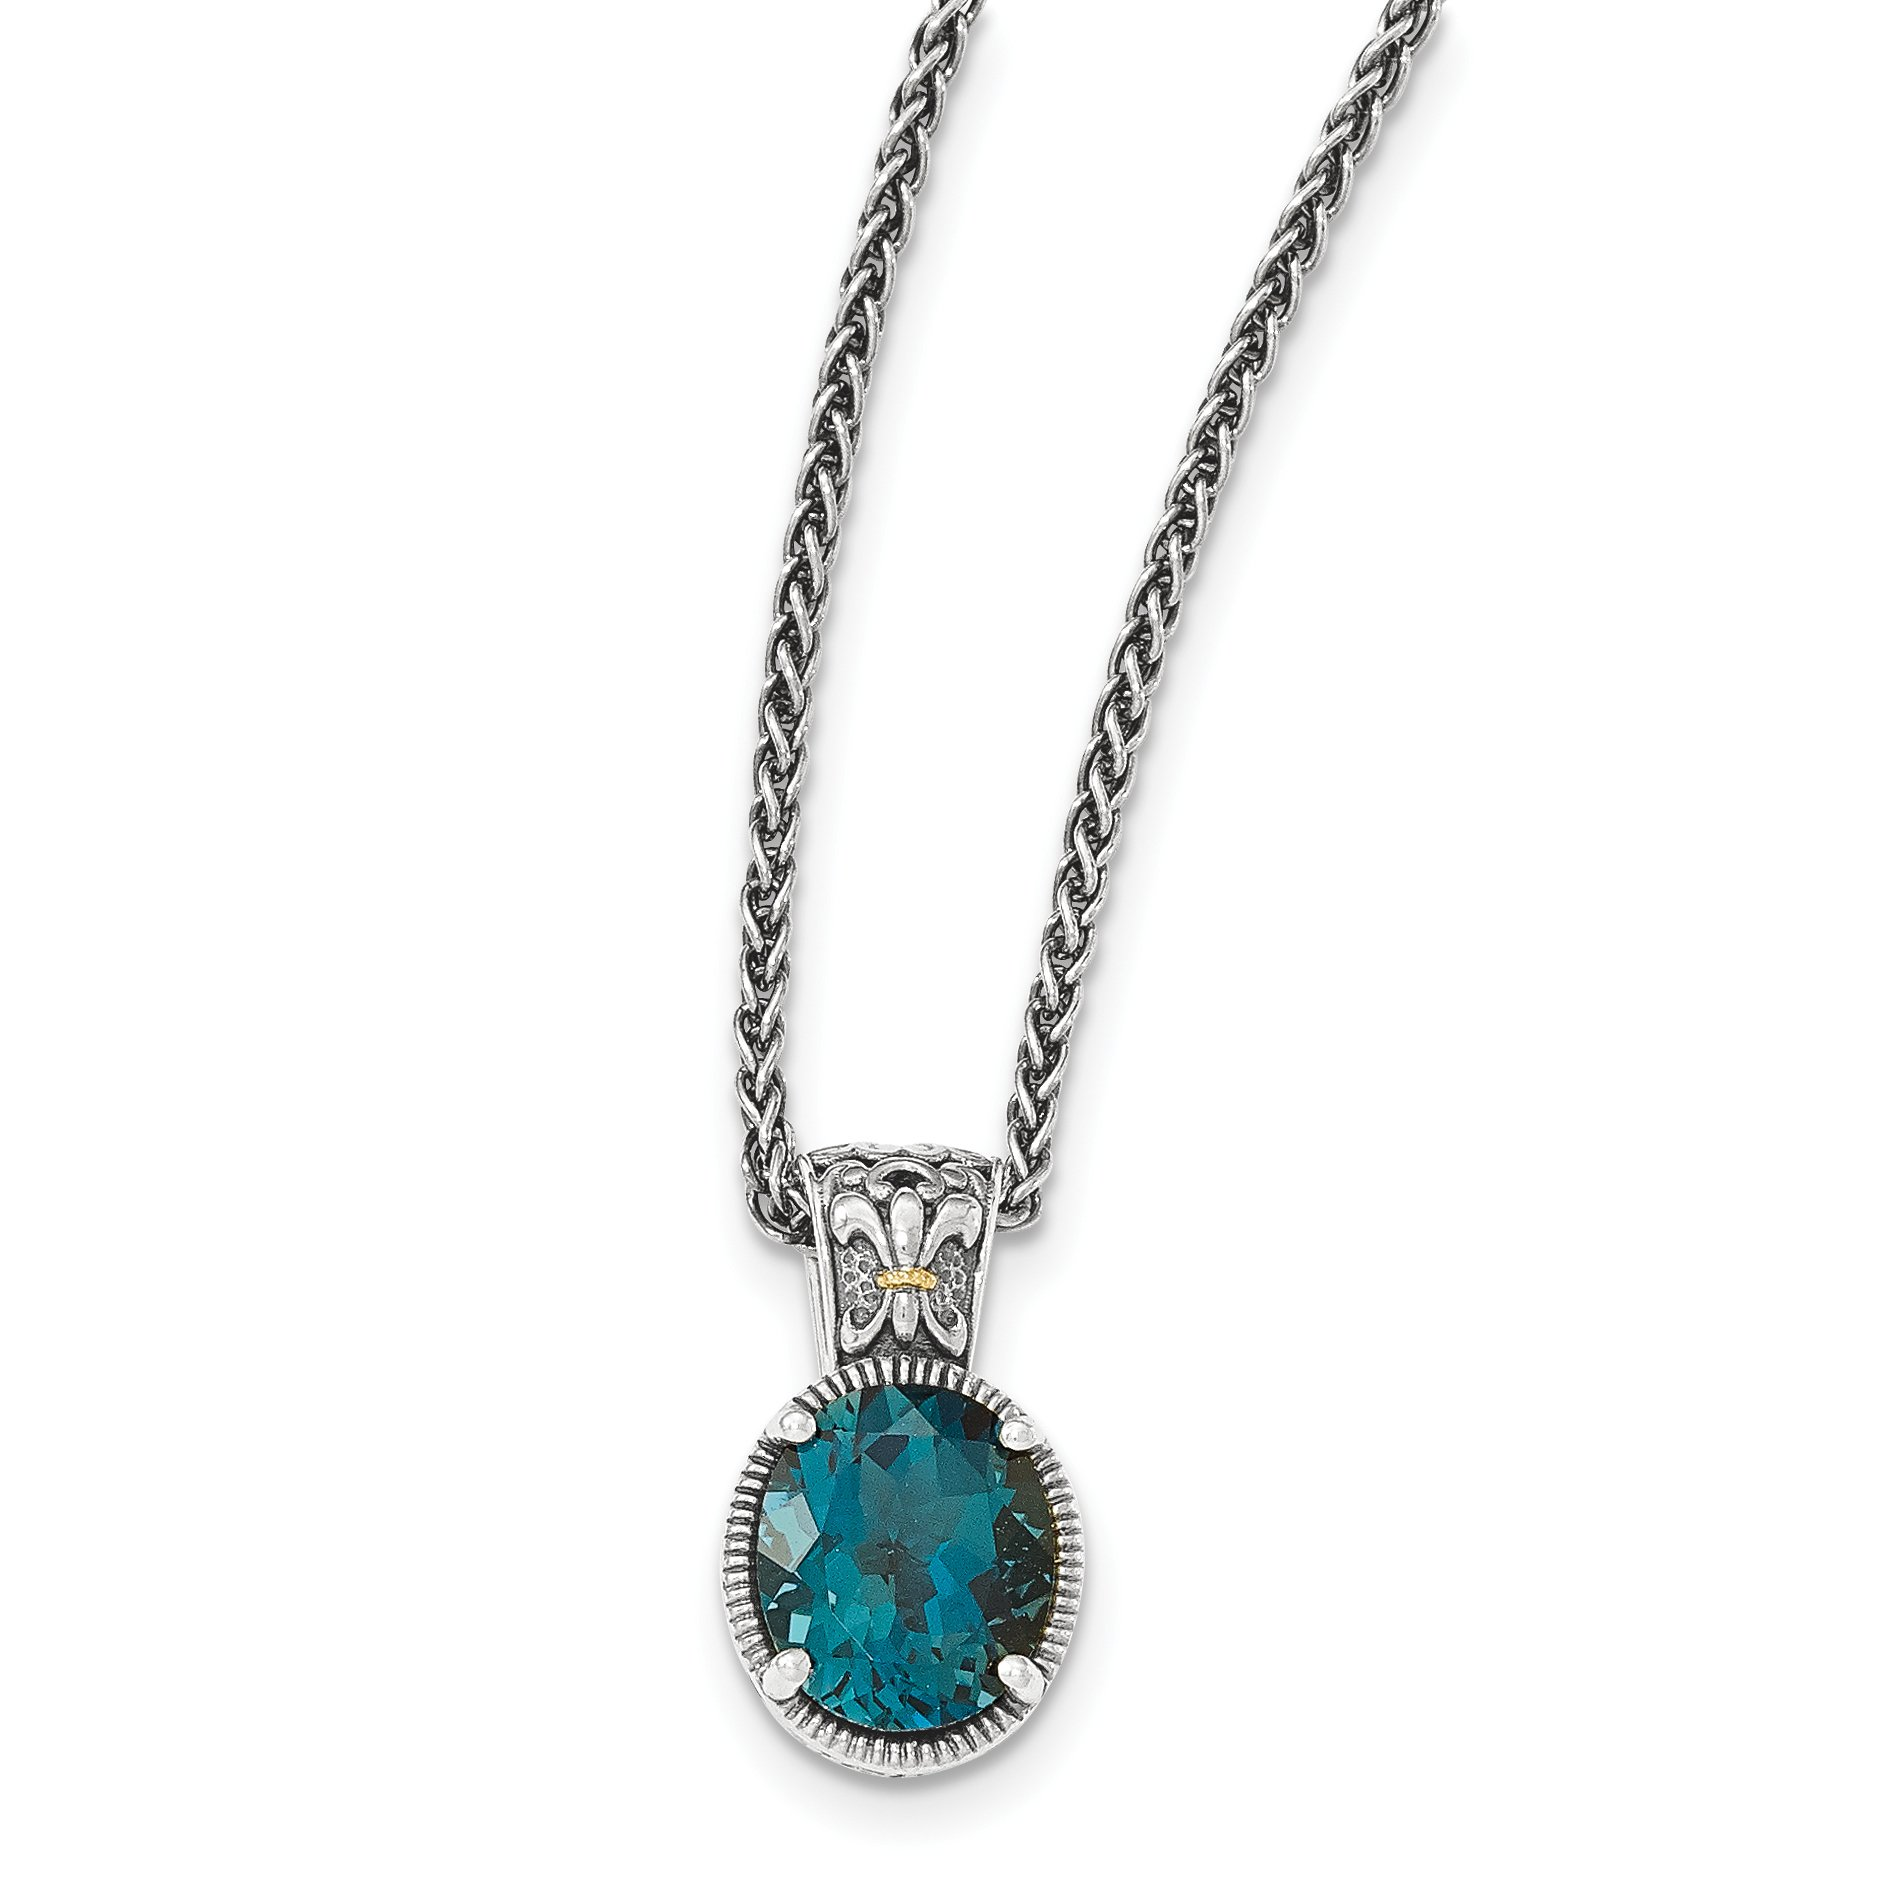 ICE CARATS 925 Sterling Silver 14k London Blue Topaz Chain Necklace Gemstone Fine Jewelry Gift Set For Women Heart